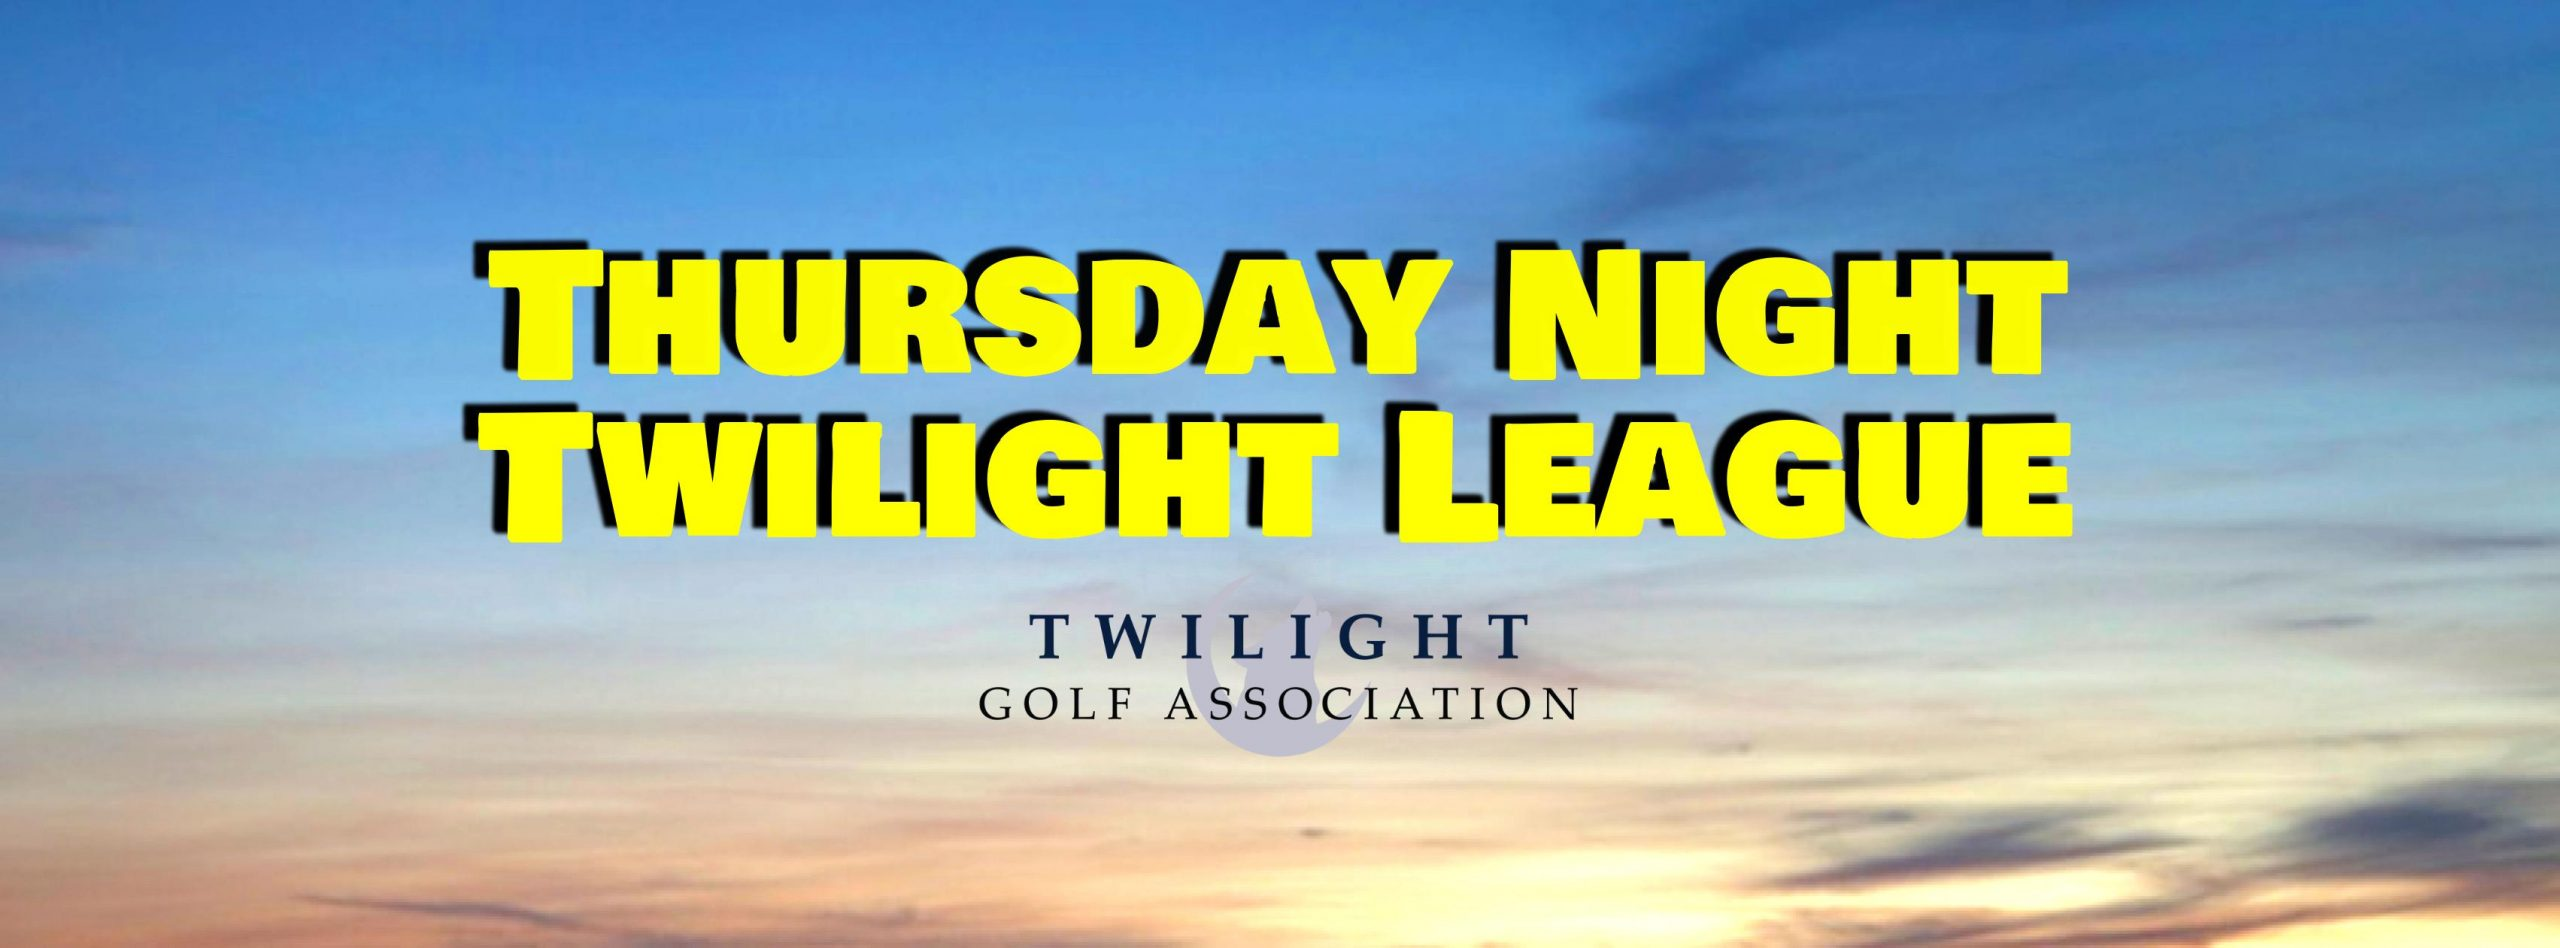 Thursday Night Twilight League at Myakka Pines Golf Club